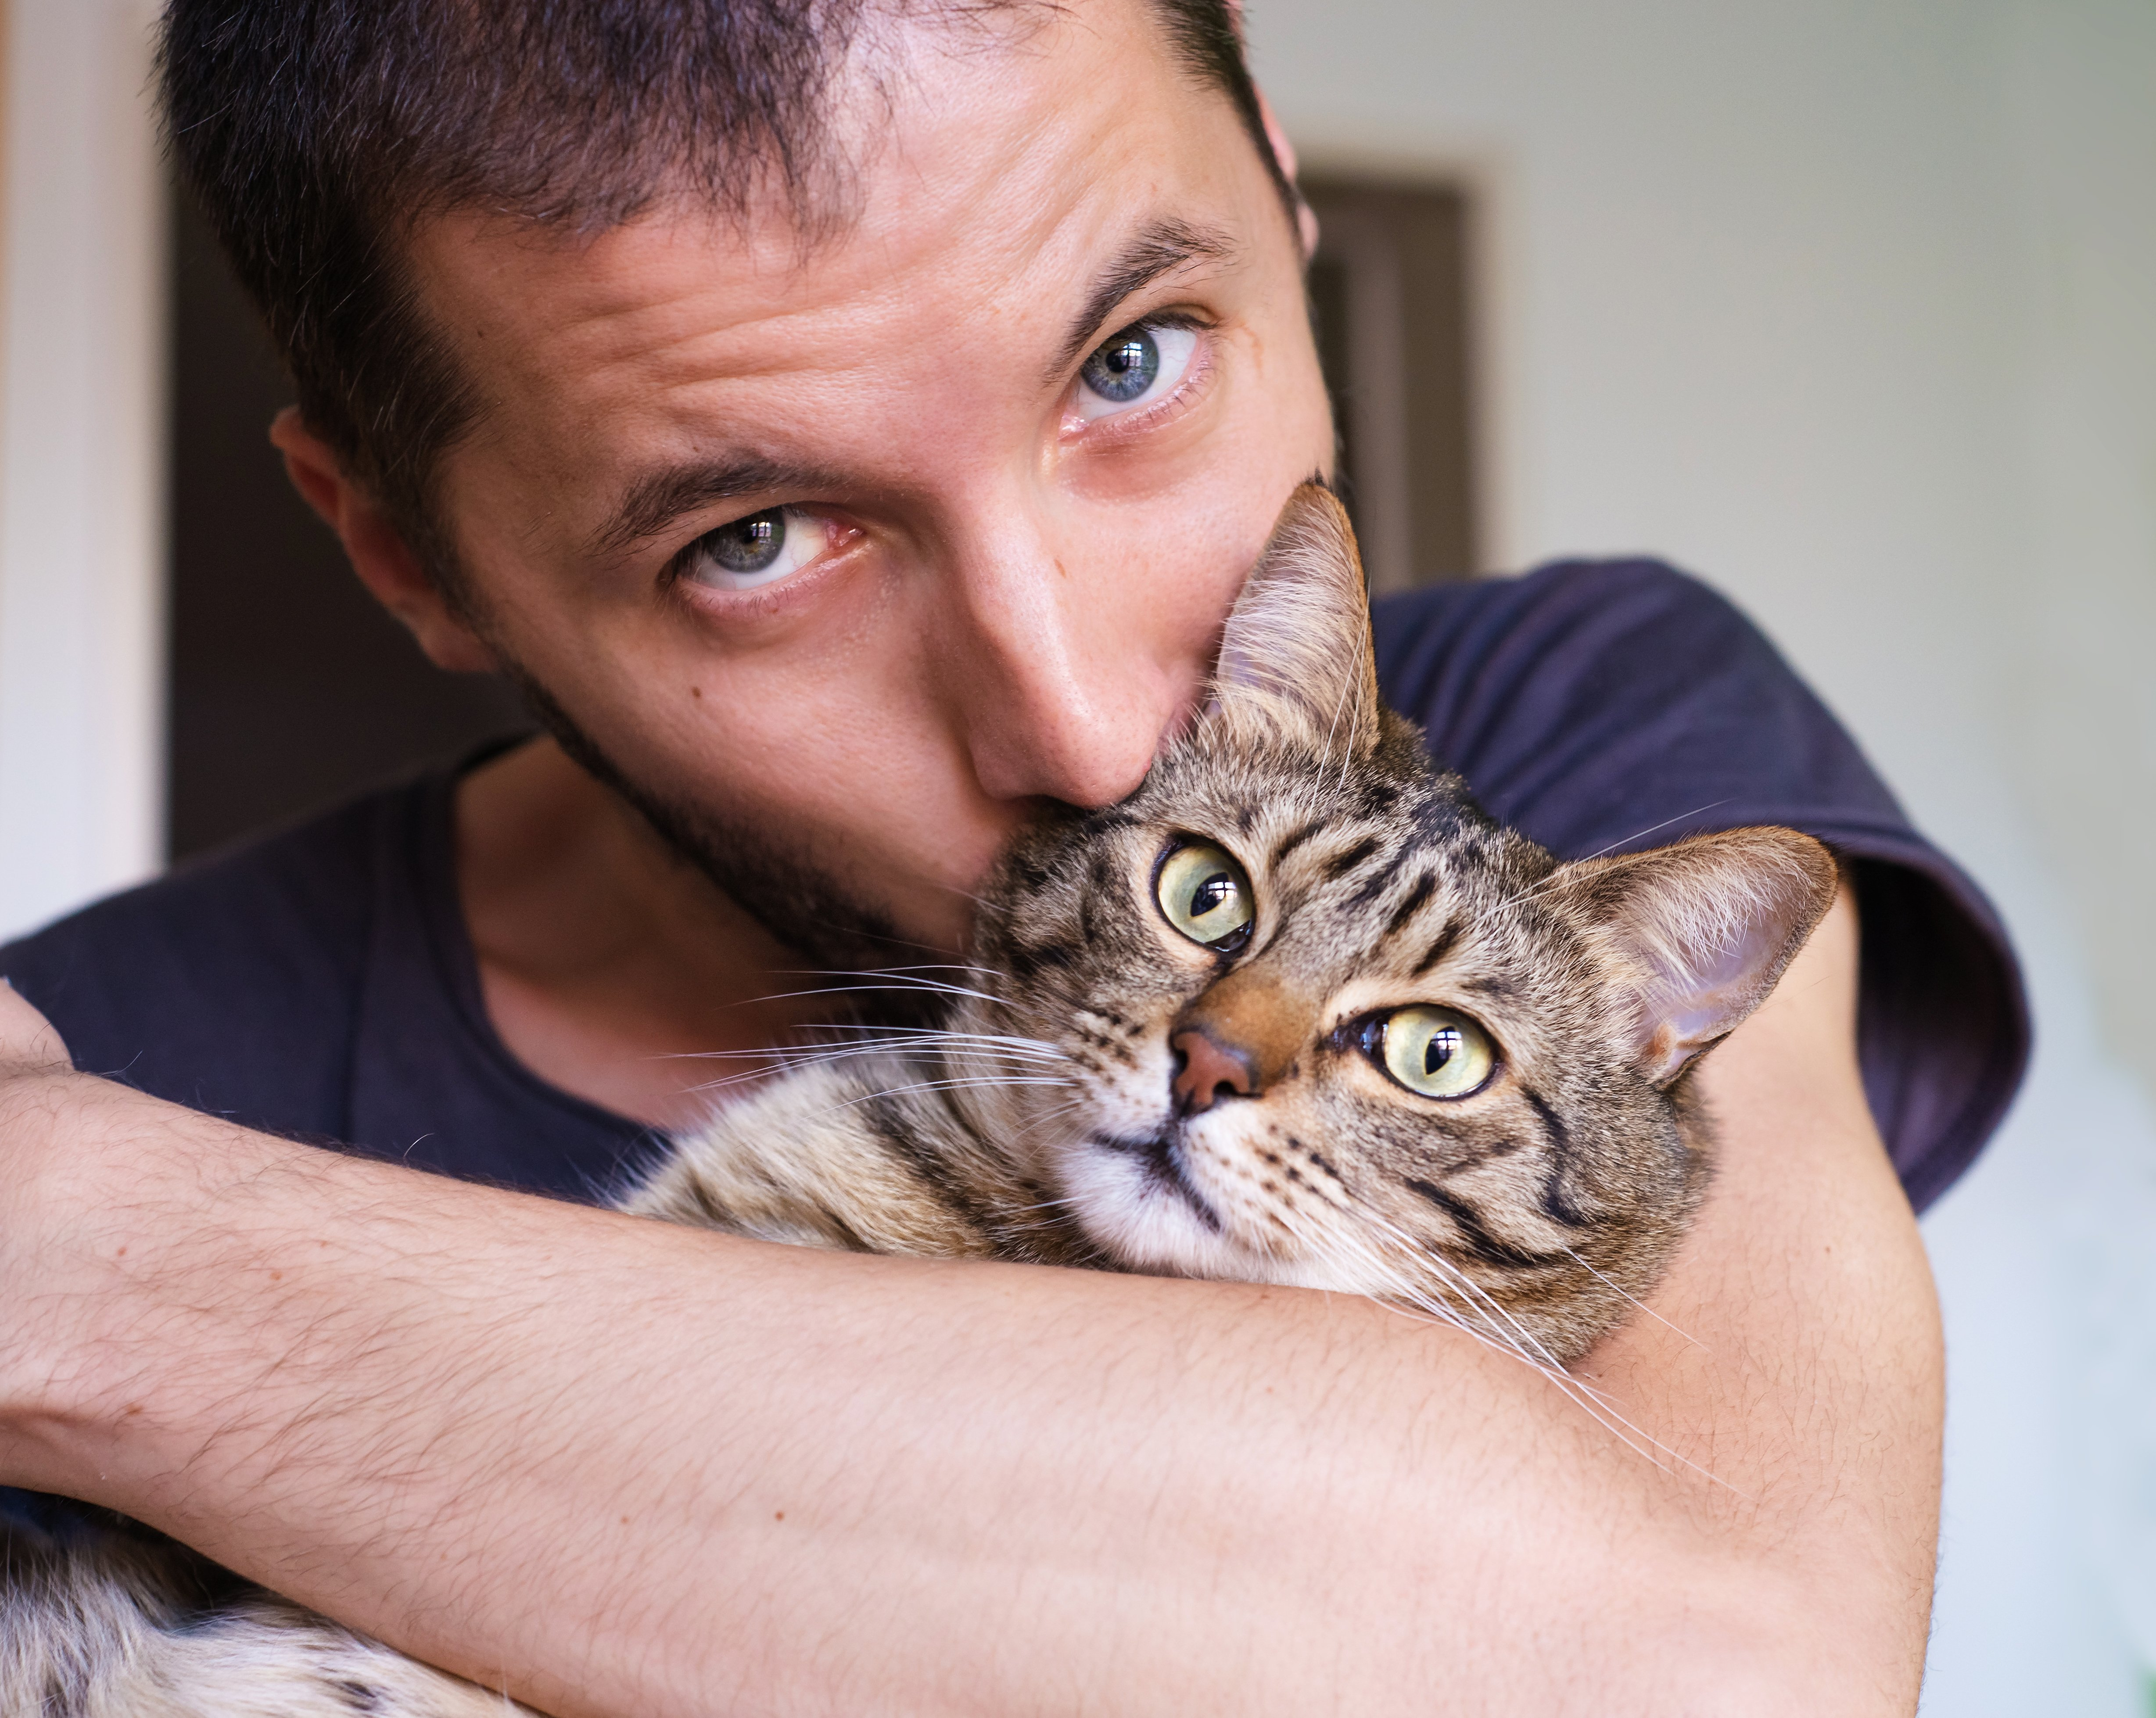 Hot Dudes With Kittens - The Purrfect Thing To See On